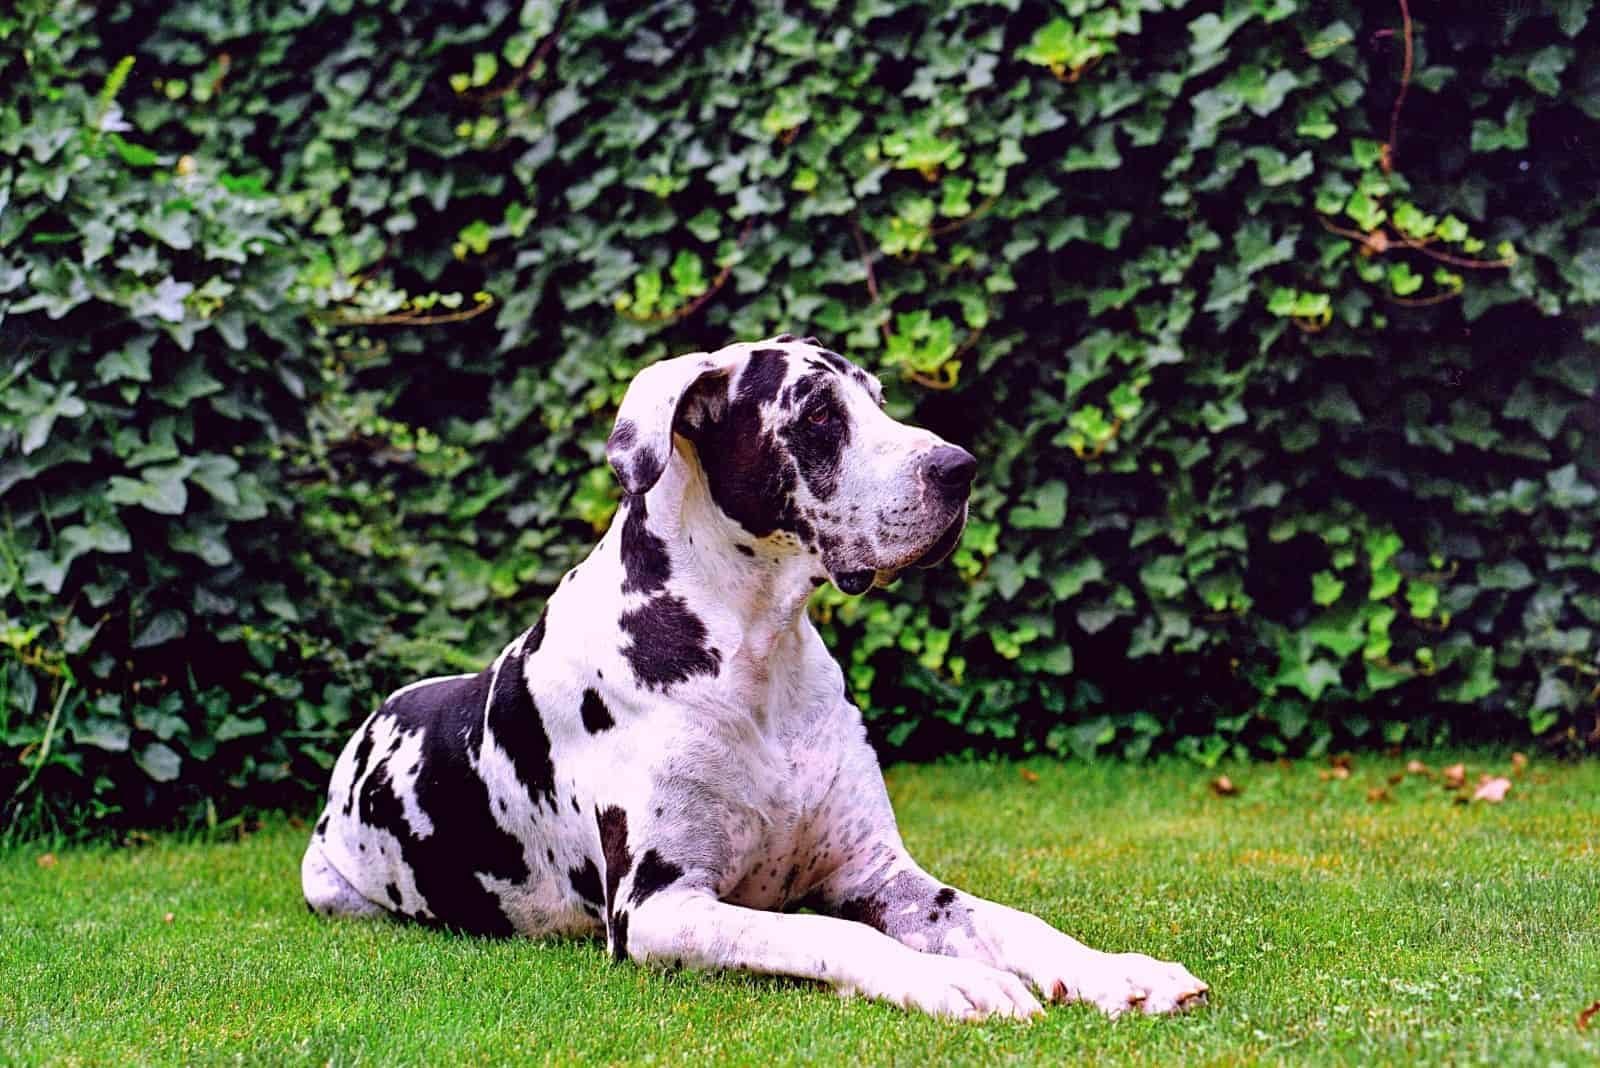 spotted great dane sitting in the garden lawn